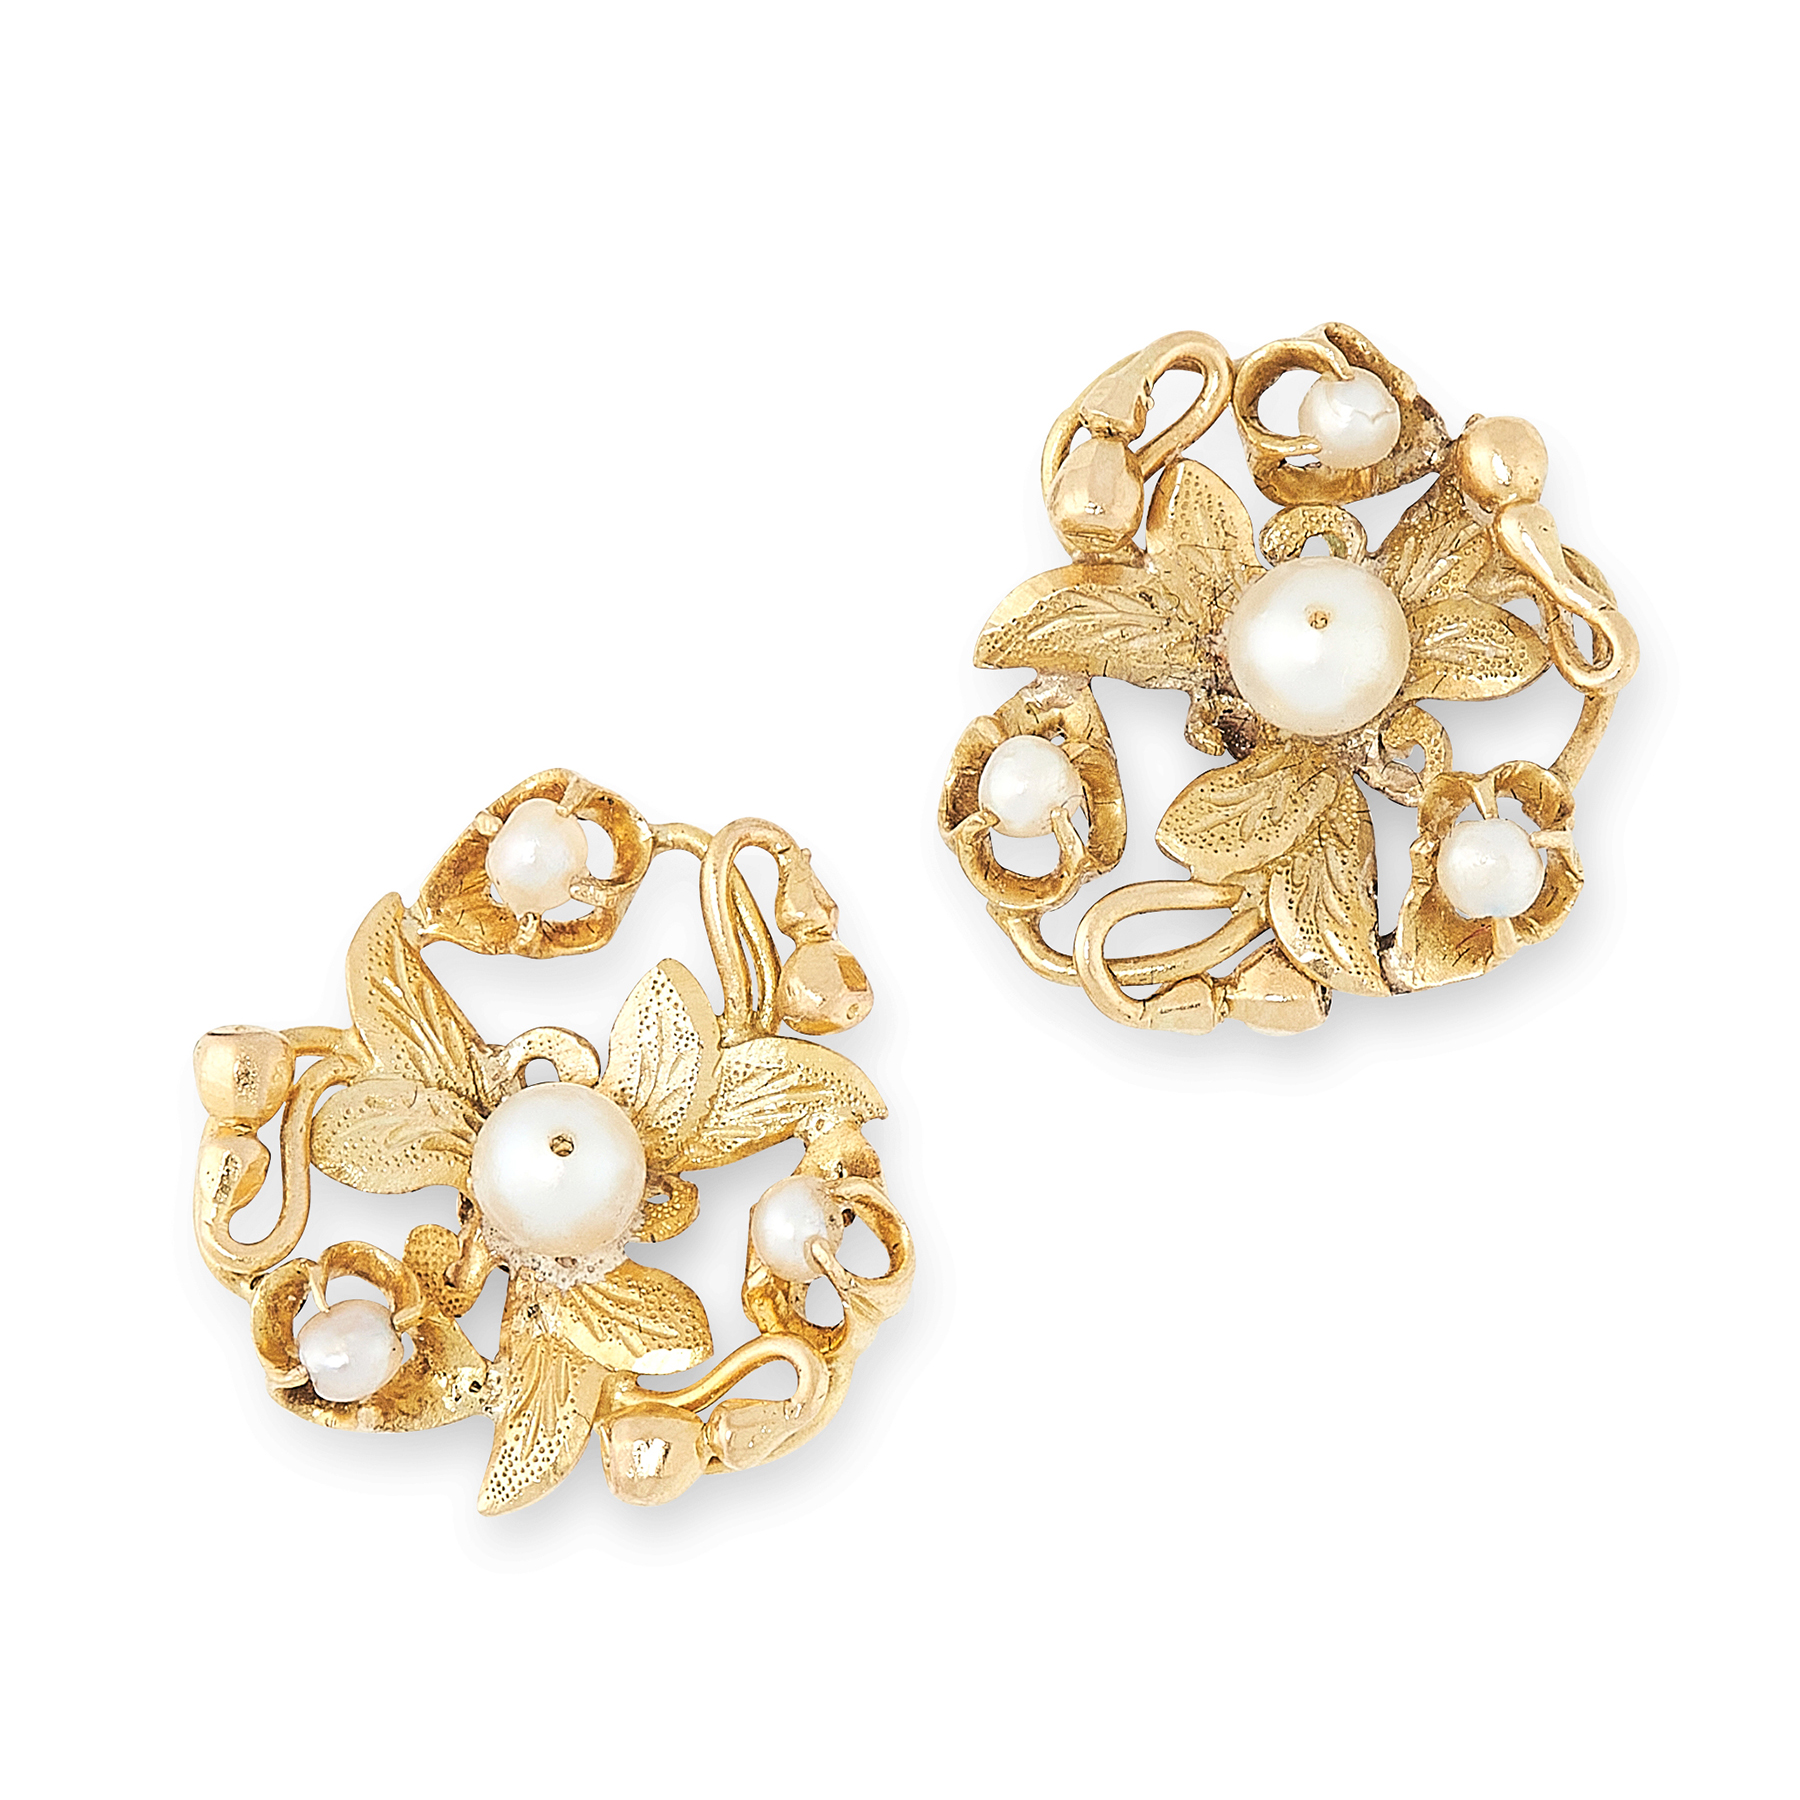 Lot 20 - A PAIR OF PEARL STUD EARRINGS, EARLY 20TH CENTURY in high carat yellow gold, each of foliate